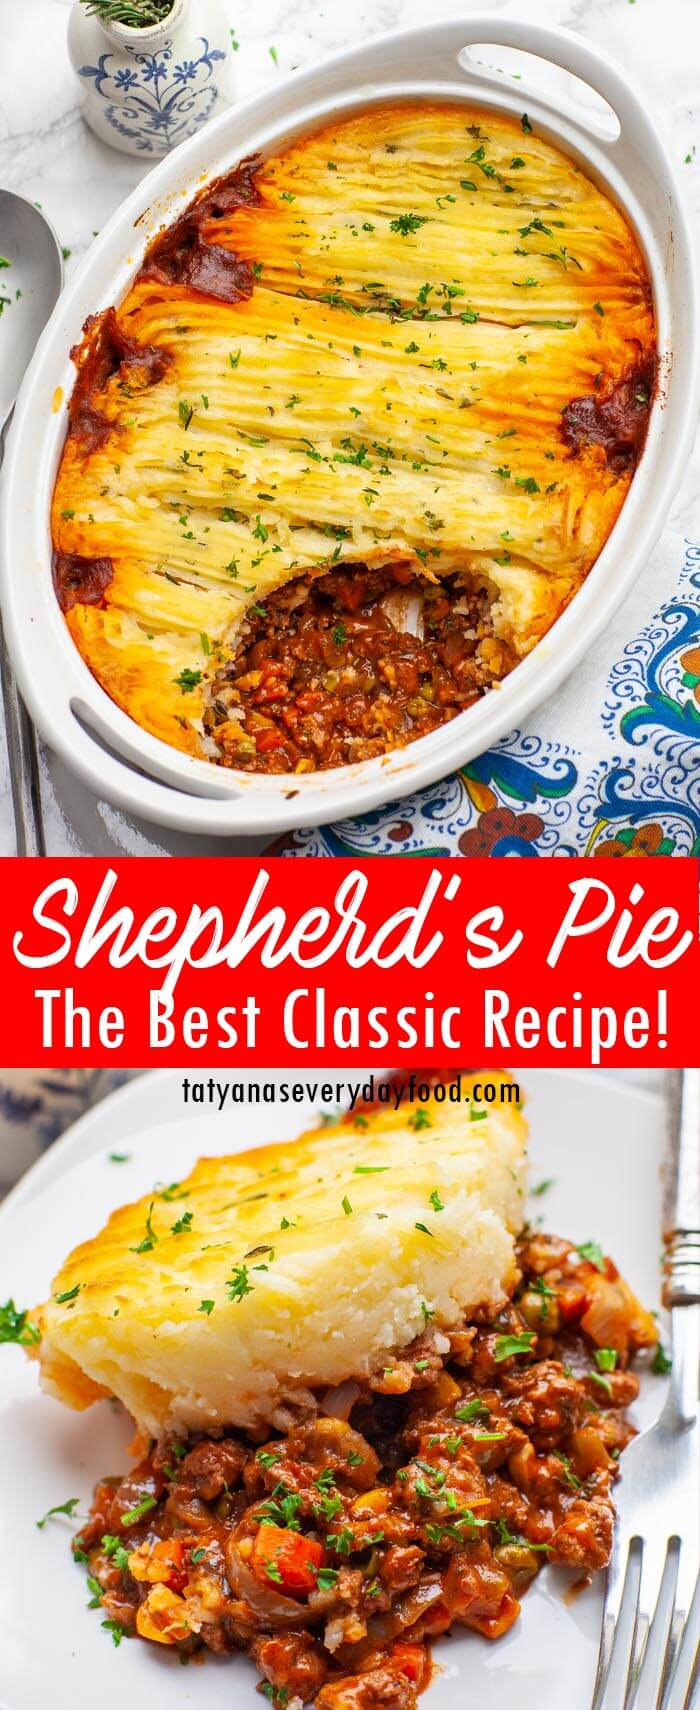 The Best Classic Shepherd's Pie video recipe